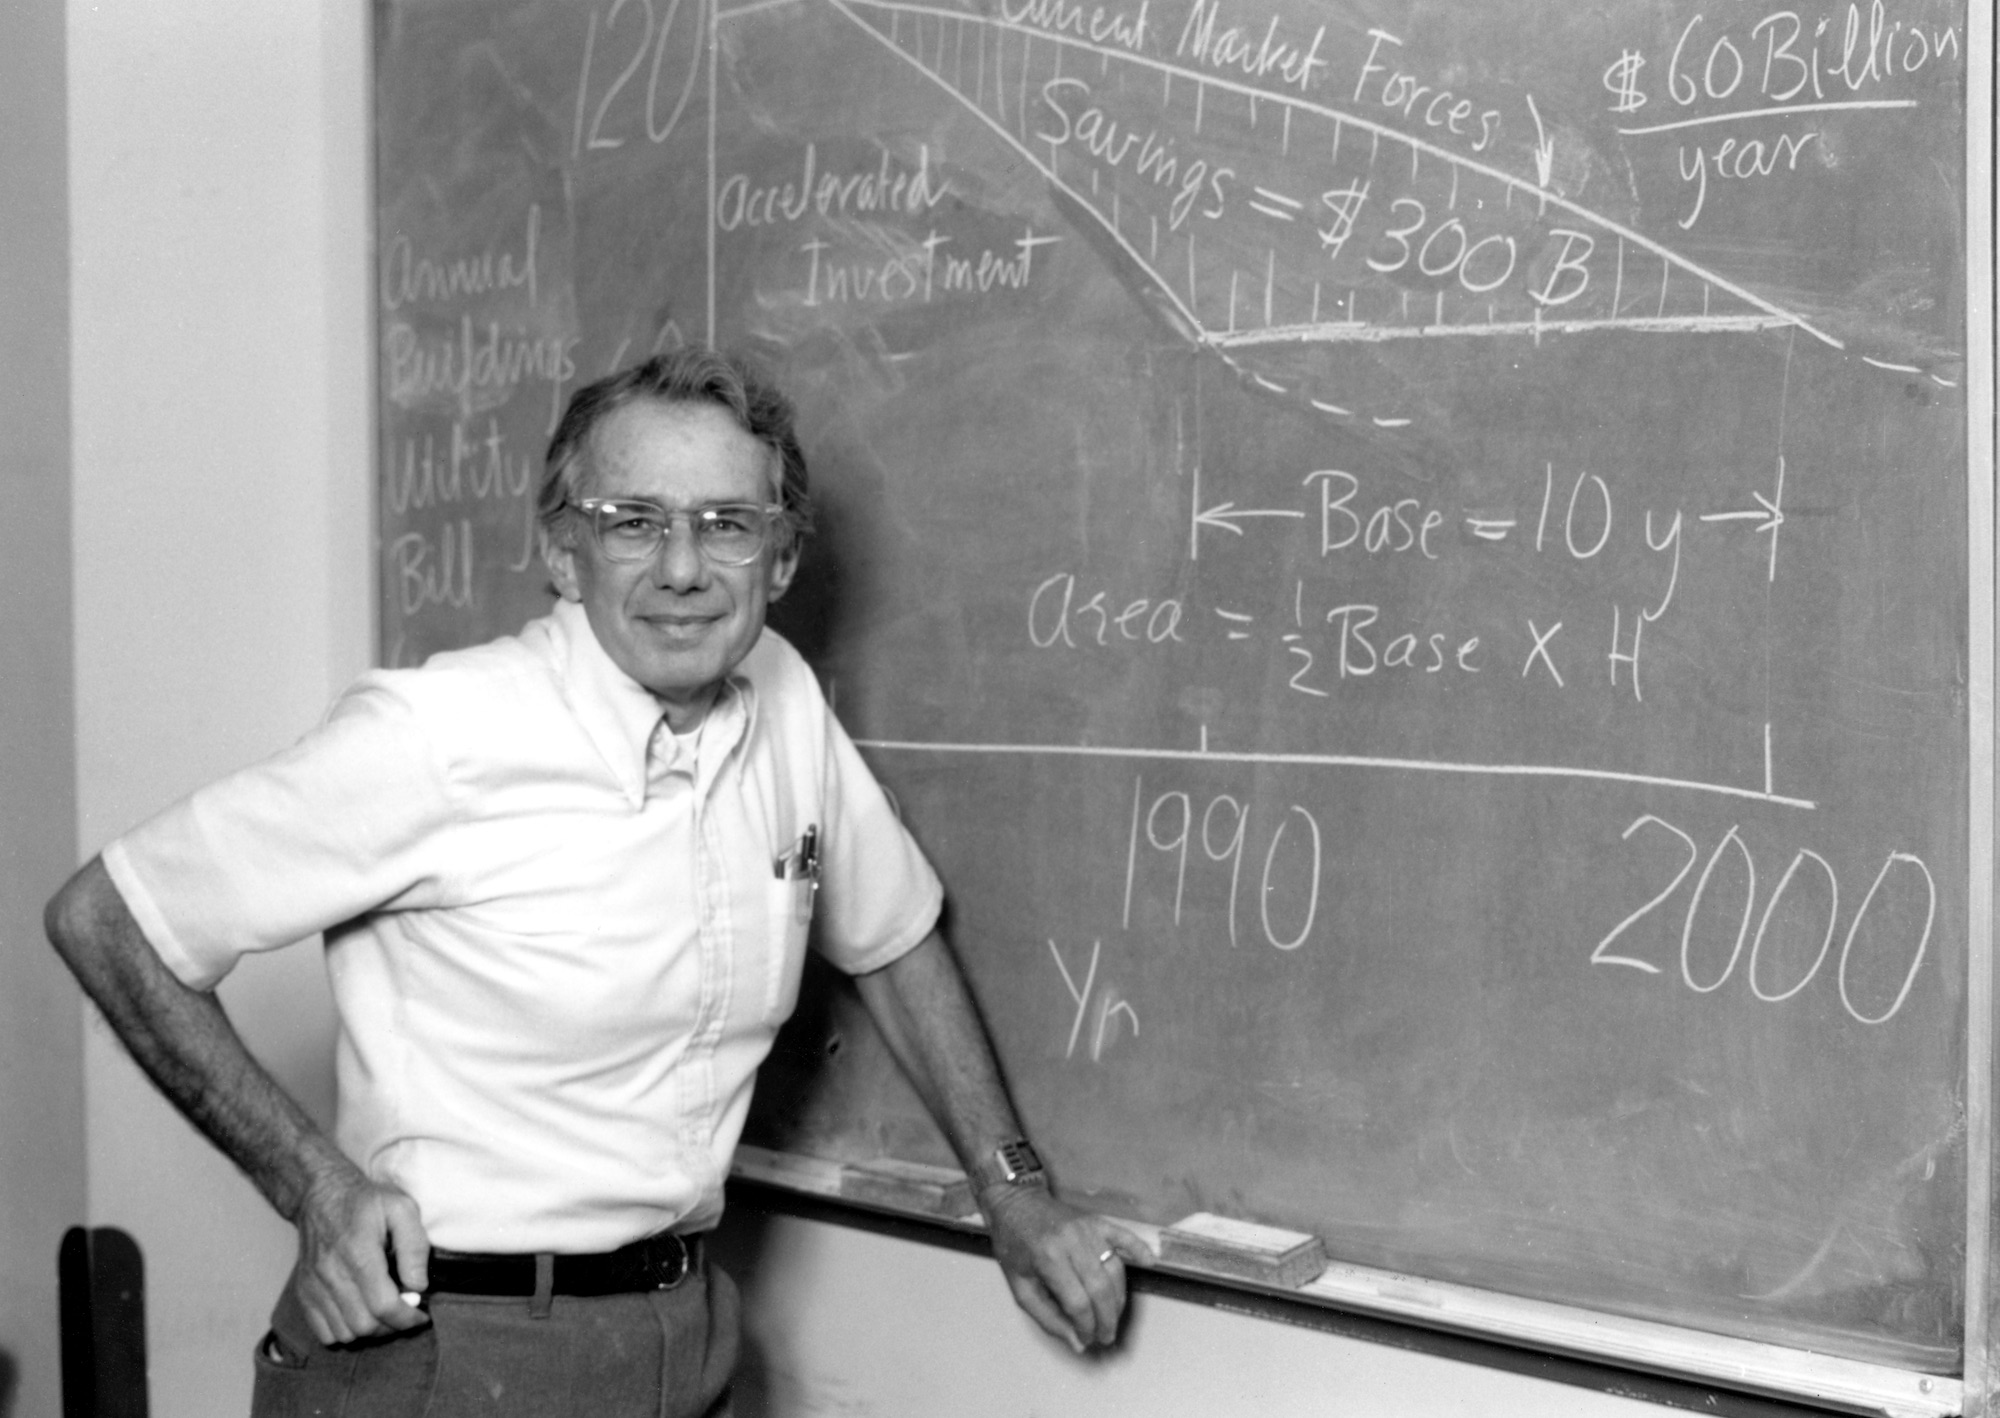 Art Rosenfeld at the chalkboard, at Lawrence Berkeley National Lab.